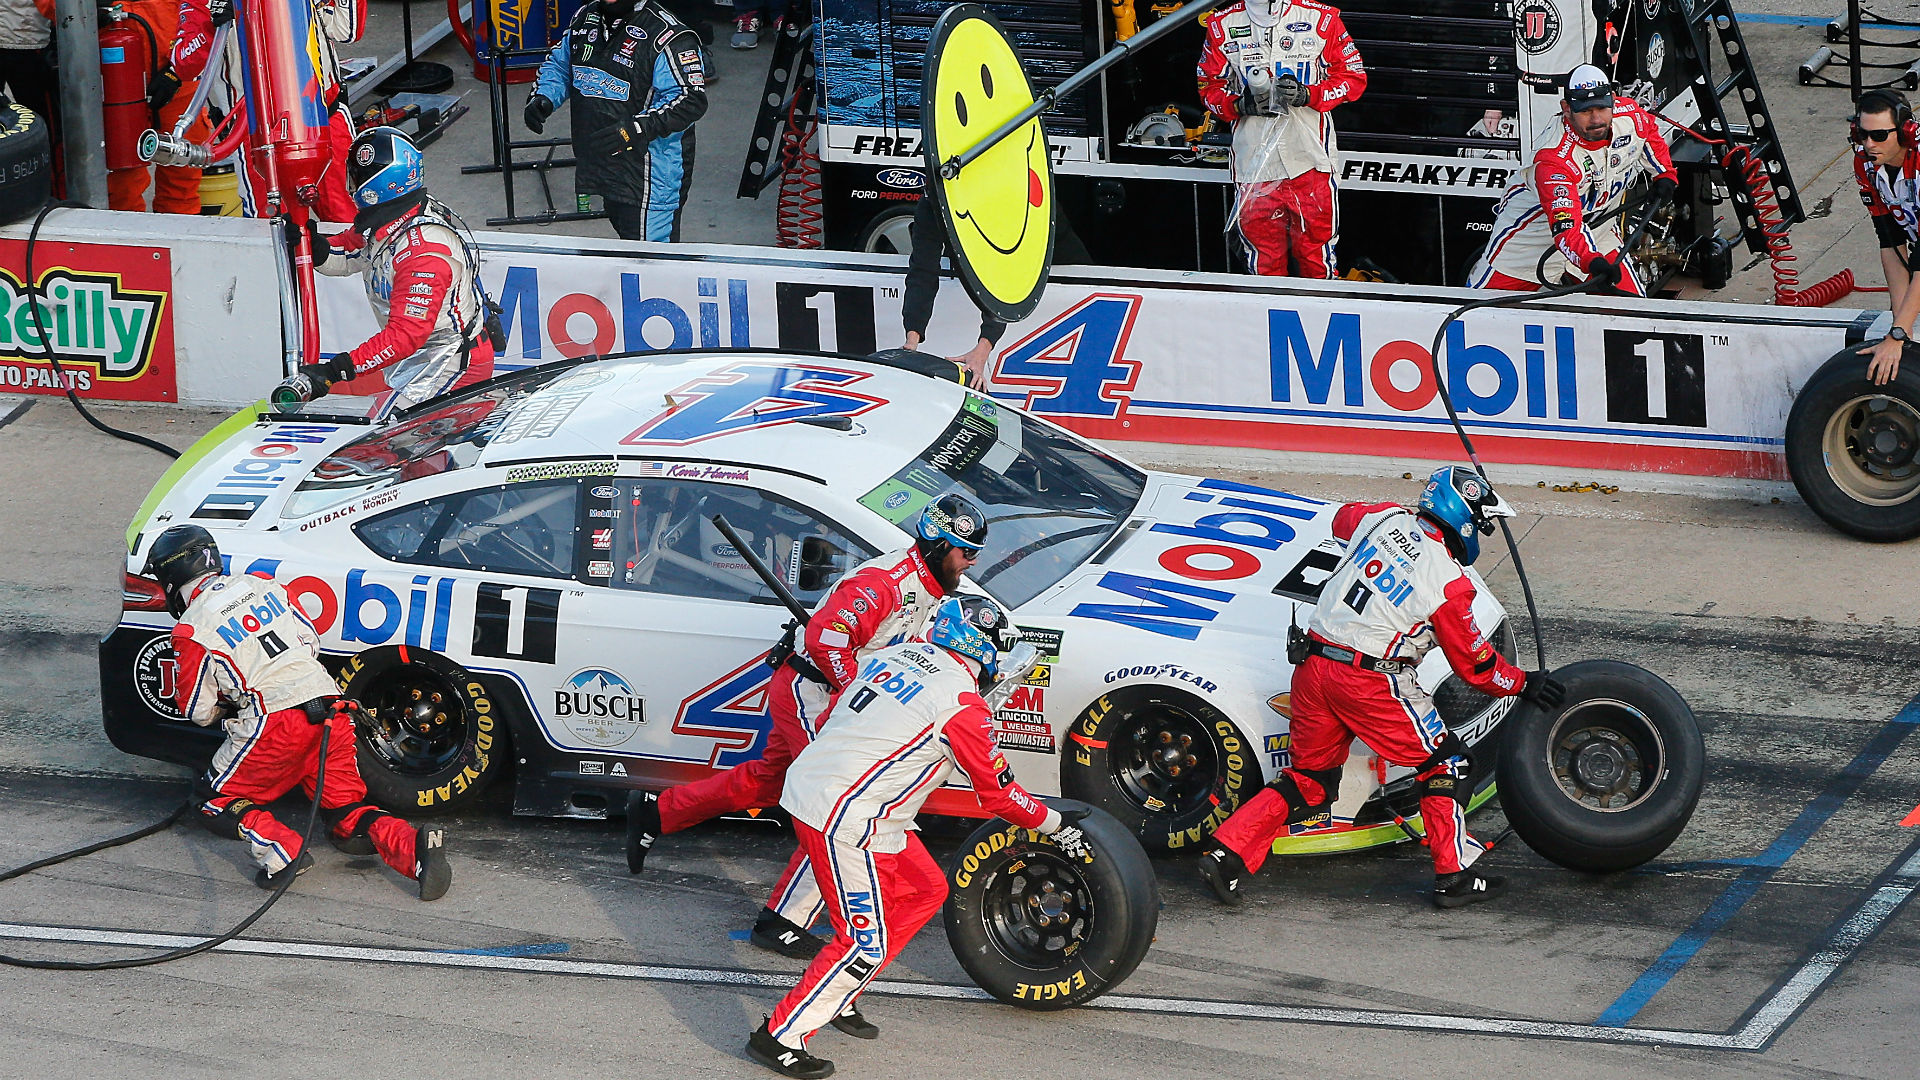 Stewart-Haas Racing driver Kevin Harvick becomes the second driver to lock in for the Championship 4 at Homestead, joining Joey Logano.